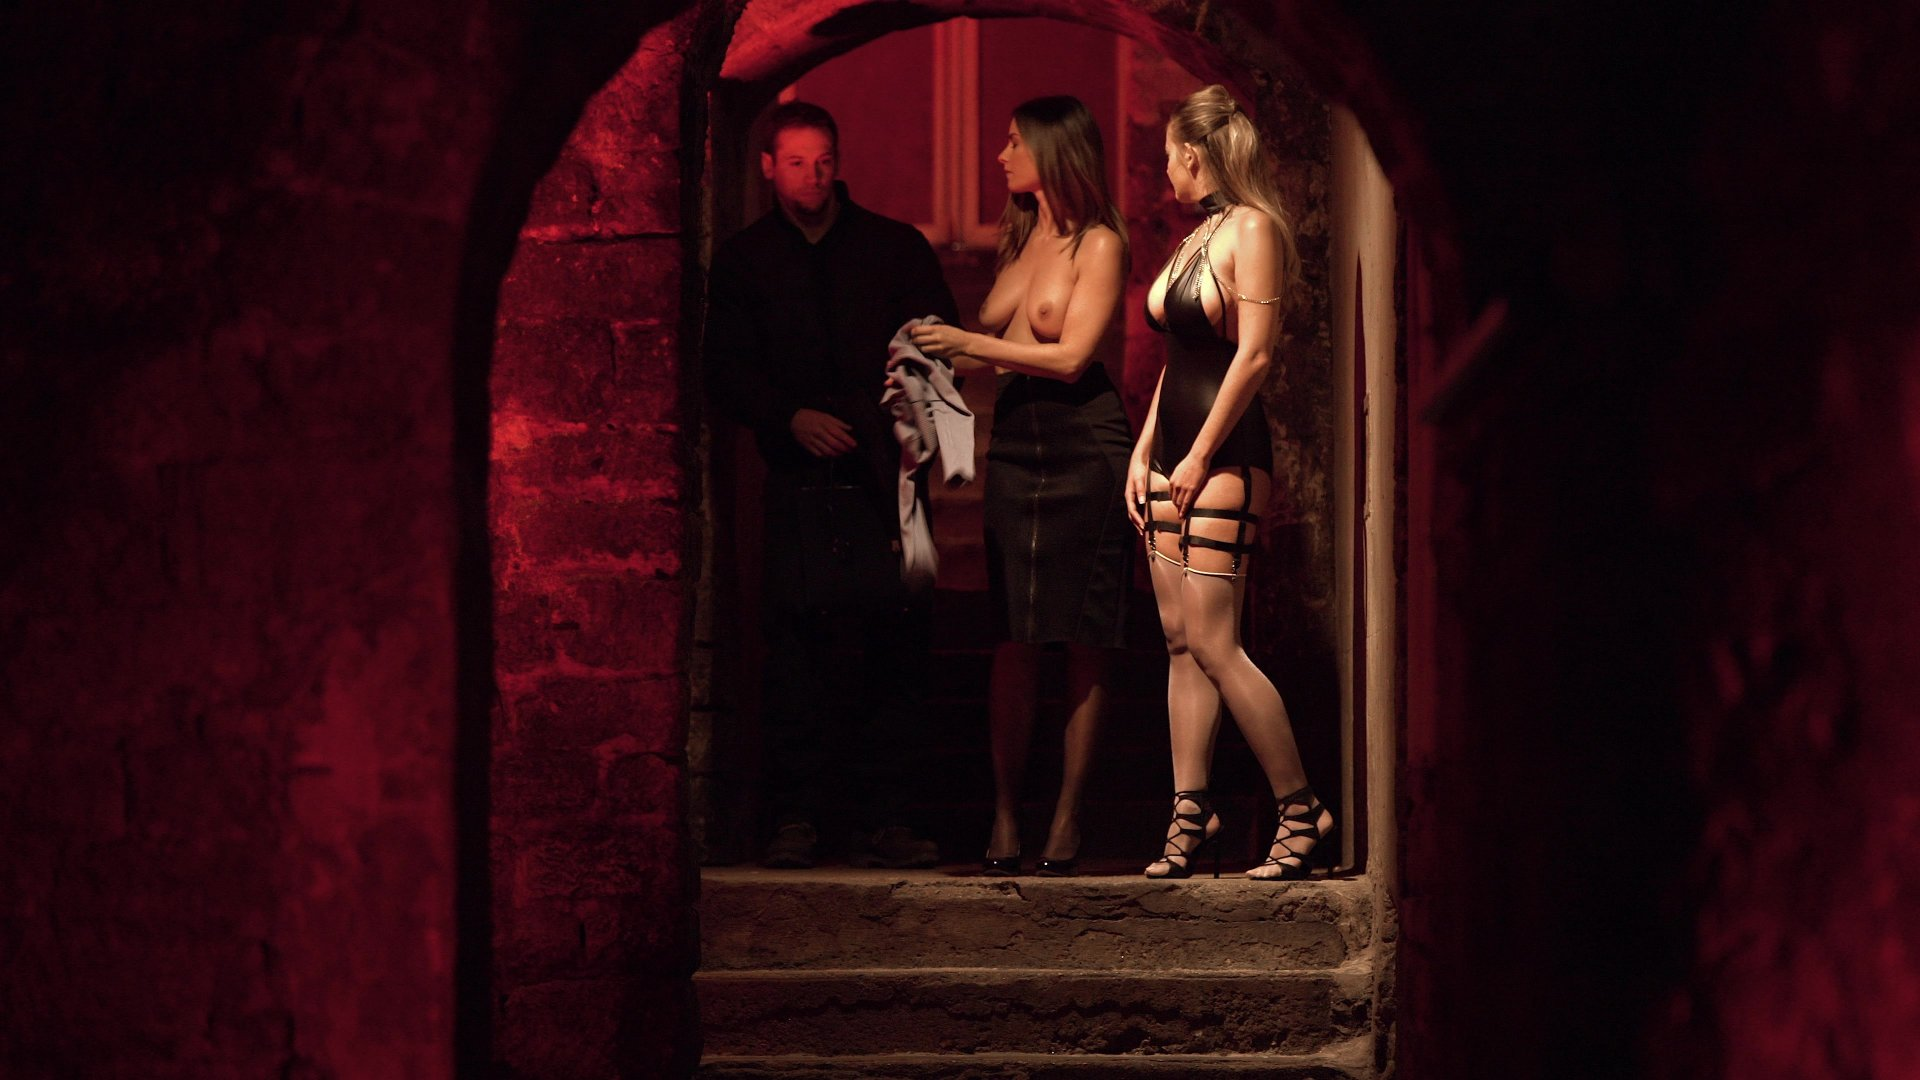 Preview image 4 out of 20  of scene 7 from Claire Desires Of Submission